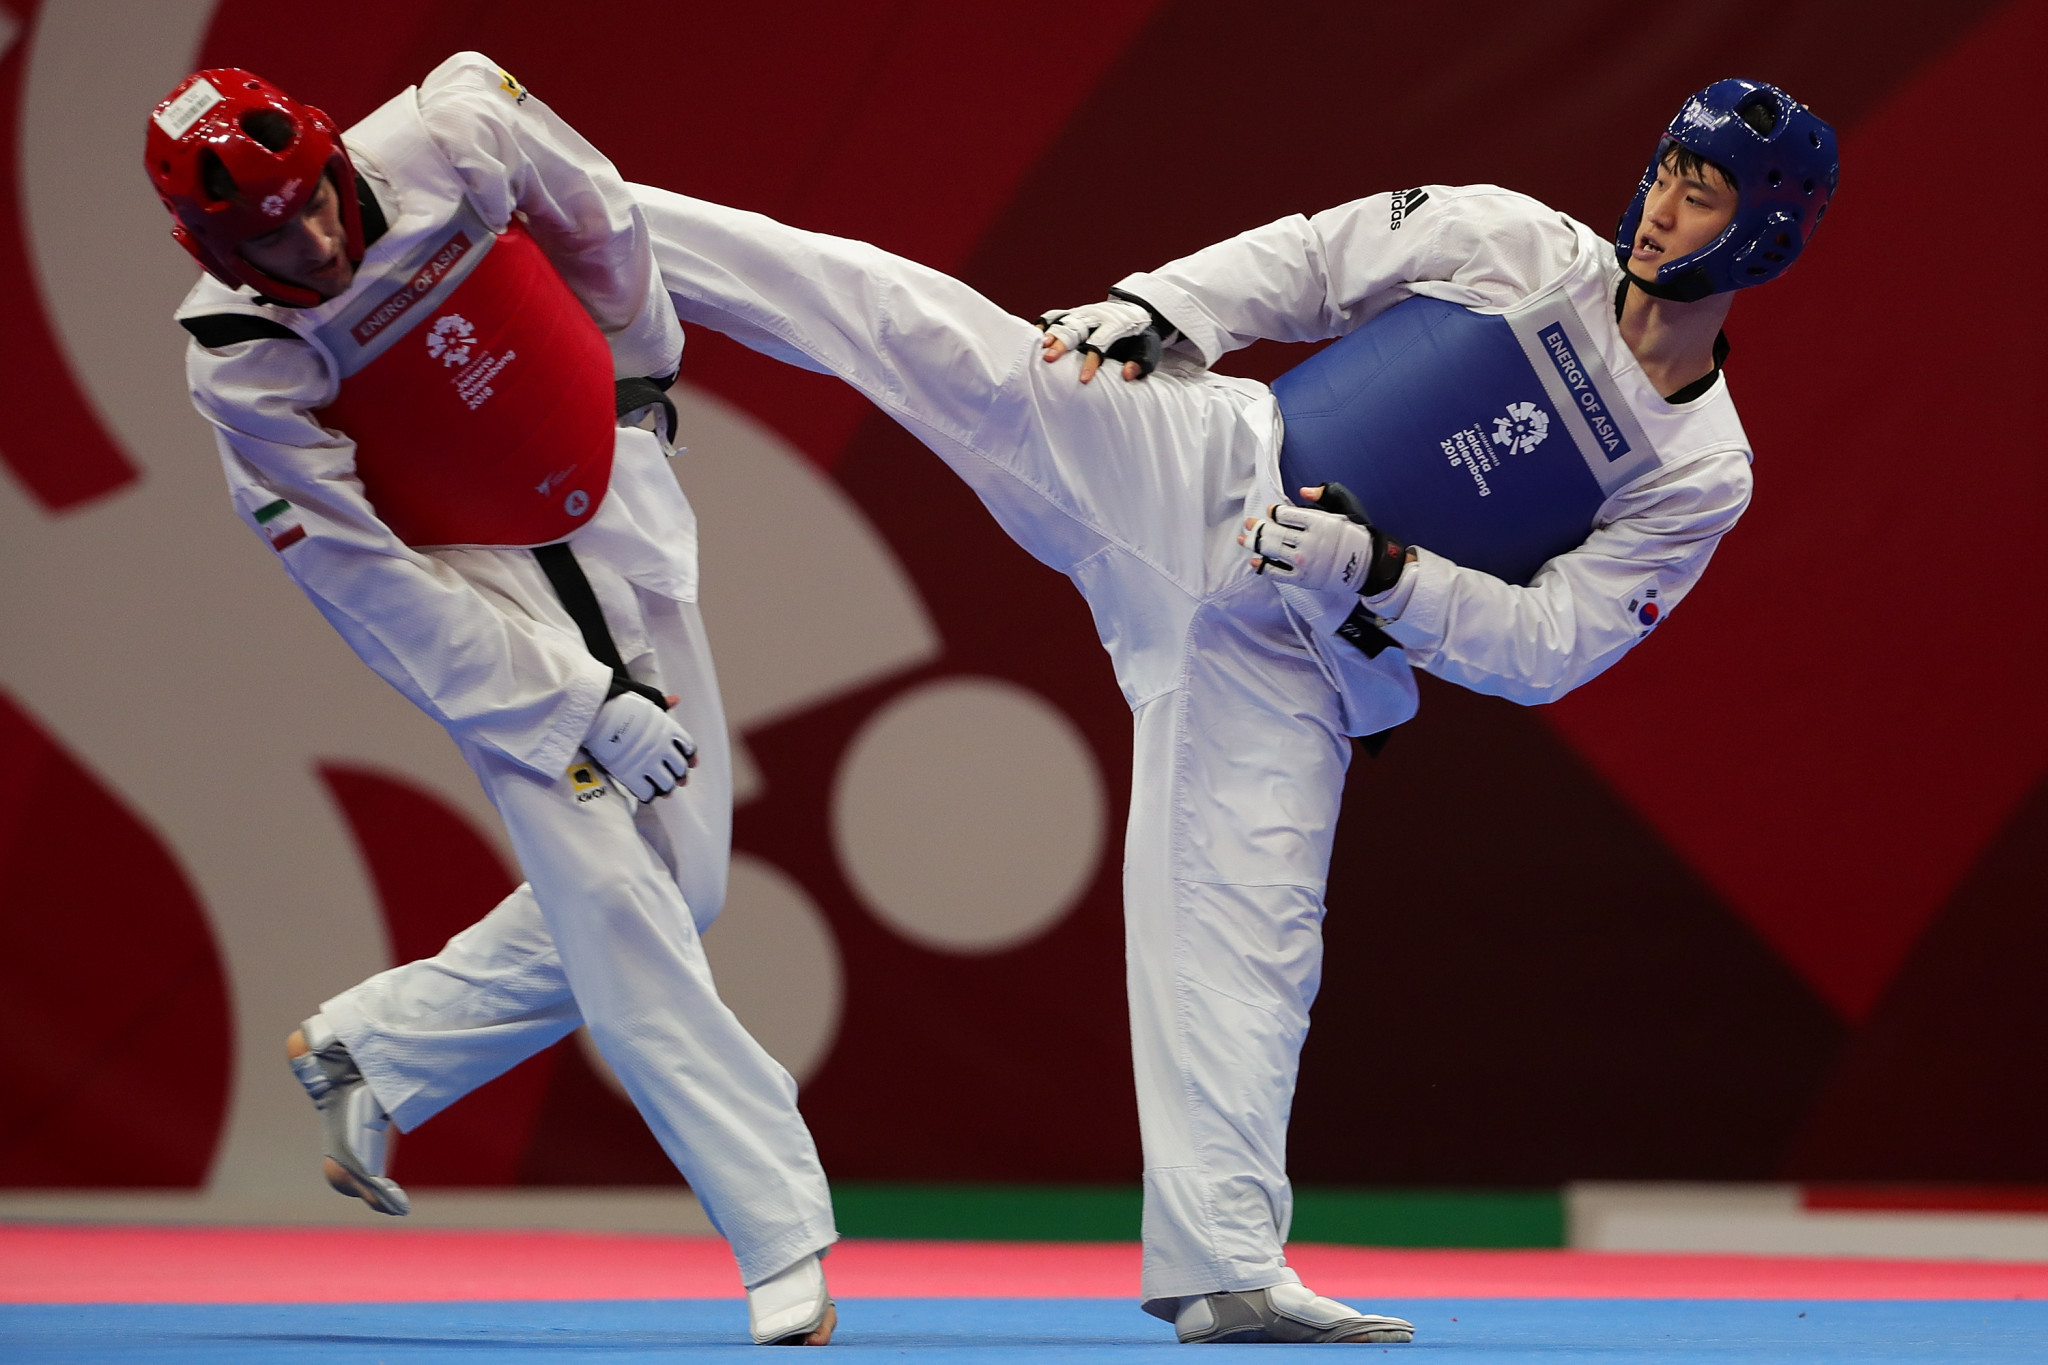 World champion Lee Dae Hoon was one of three winners on the opening day of the World Taekwondo Grand Prix in Taoyuan in Chinese Taipei ©Getty Images